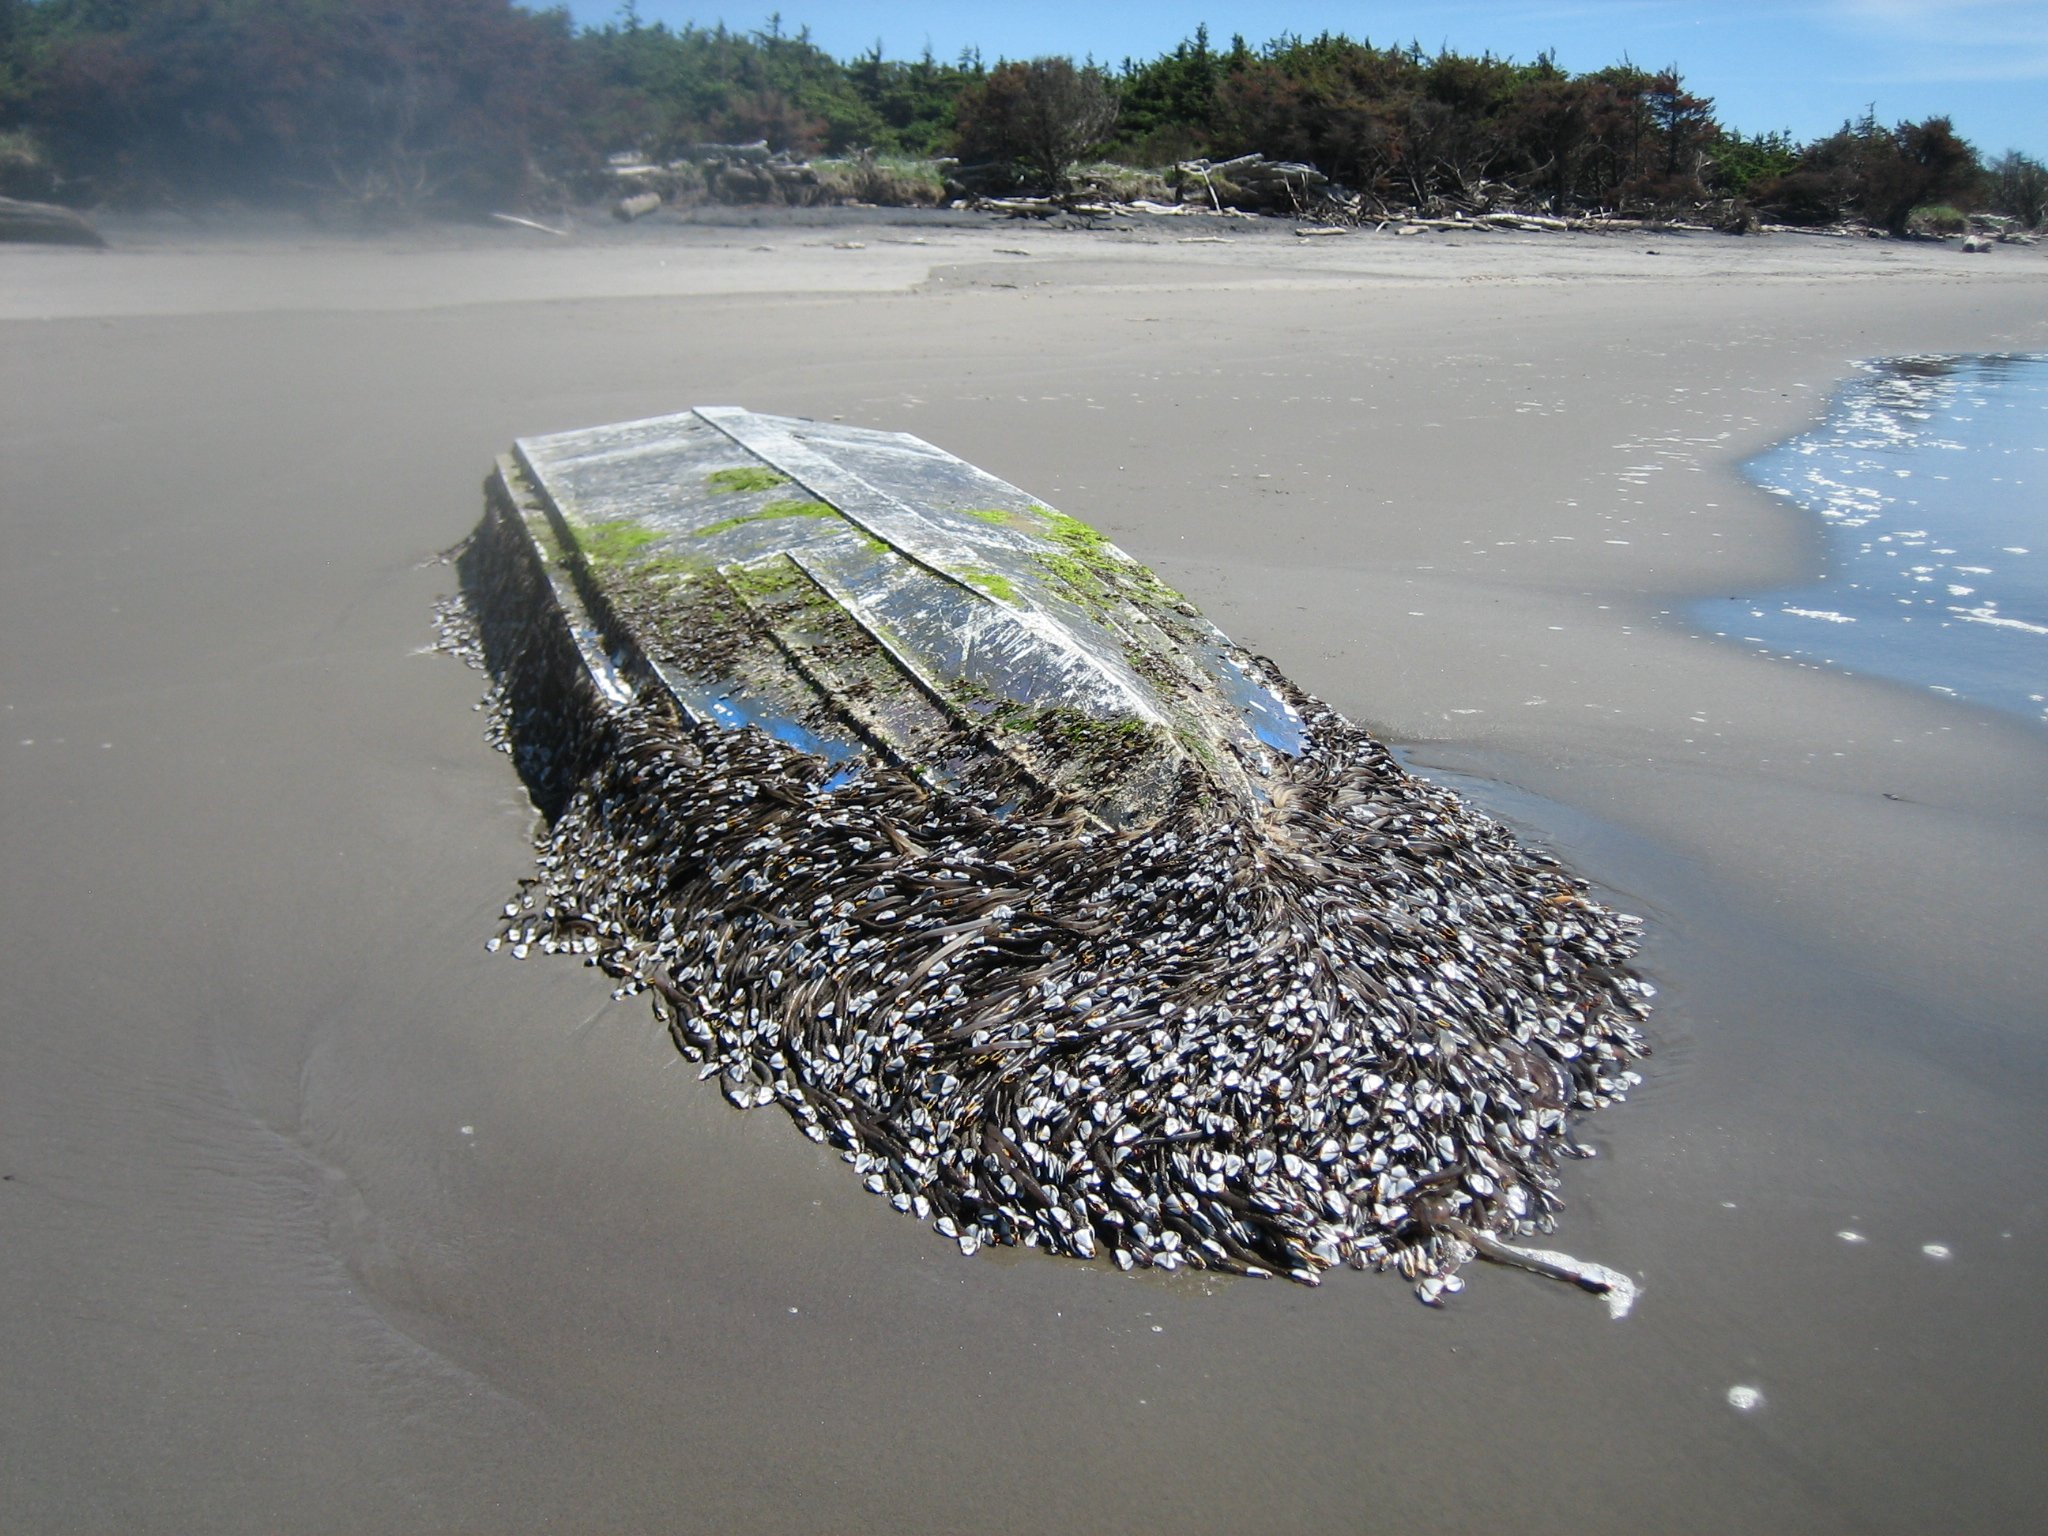 Photo: National Oceanic and Atmospheric Administration  / A boat that may be debris from the Japanese tsunami washed ashore in Ilwaco last week.